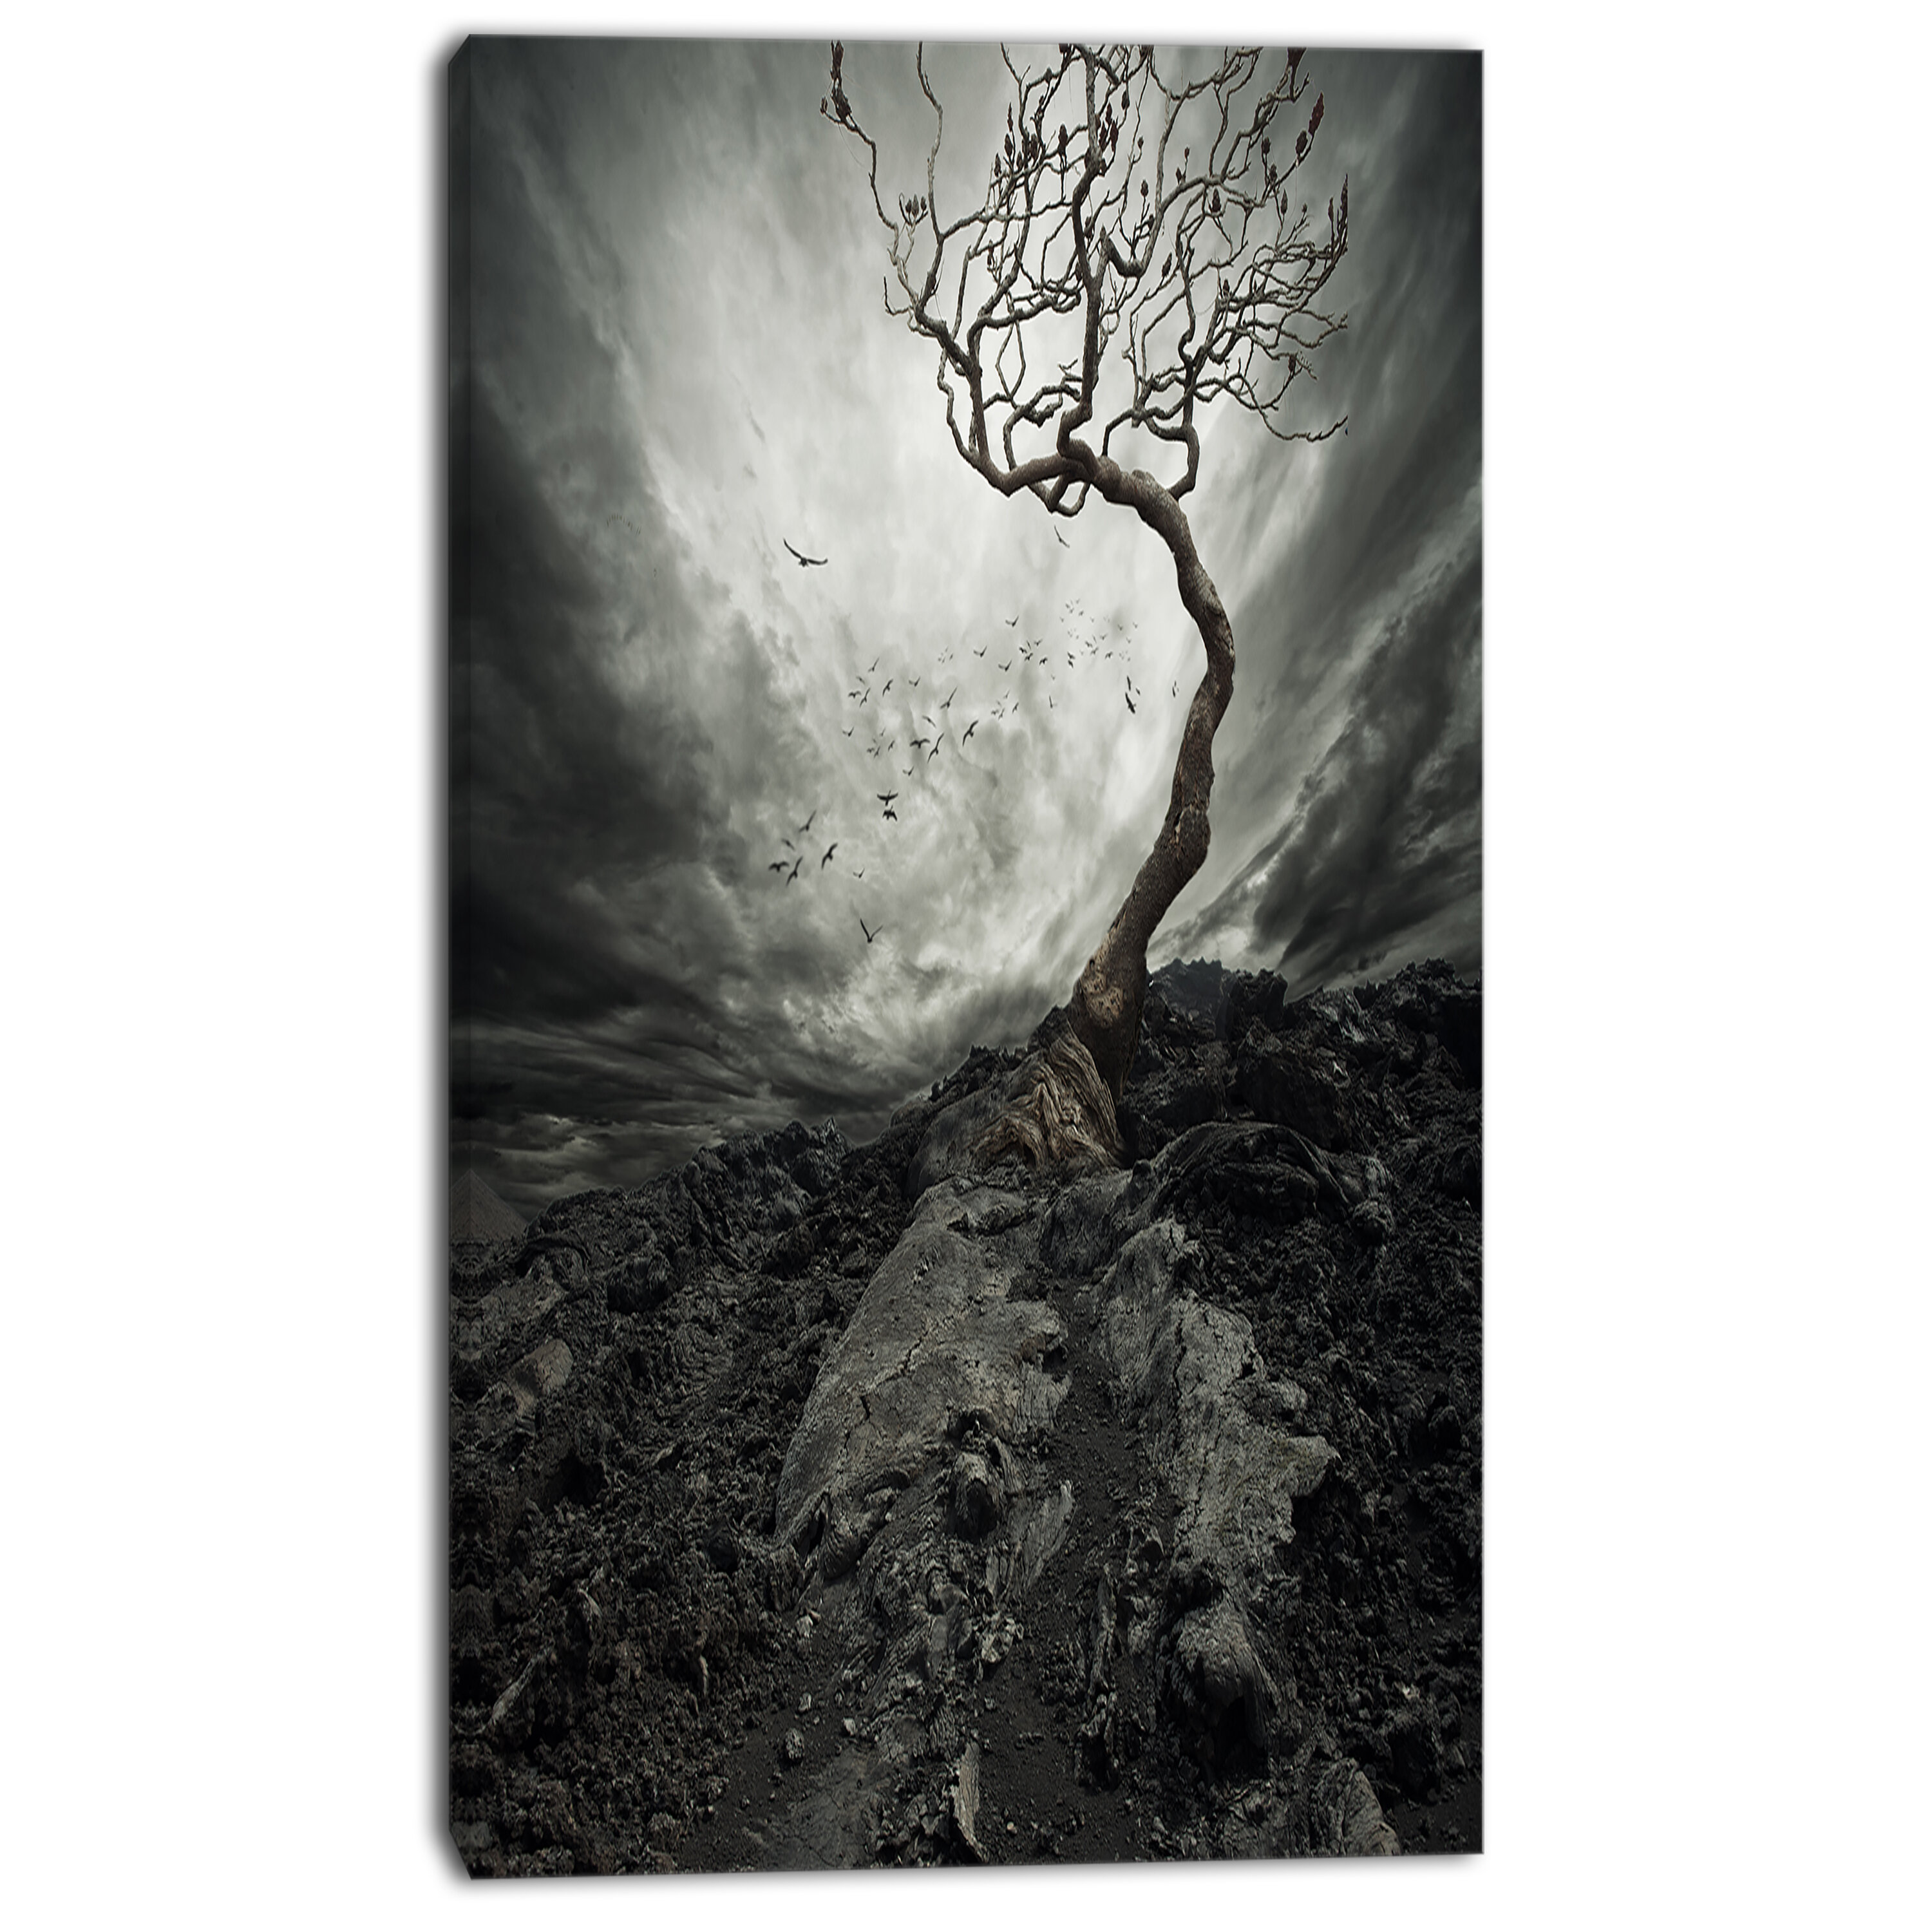 Designart Lonely Tree Under Dramatic Sky Landscape Photographic Print On Wrapped Canvas Wayfair